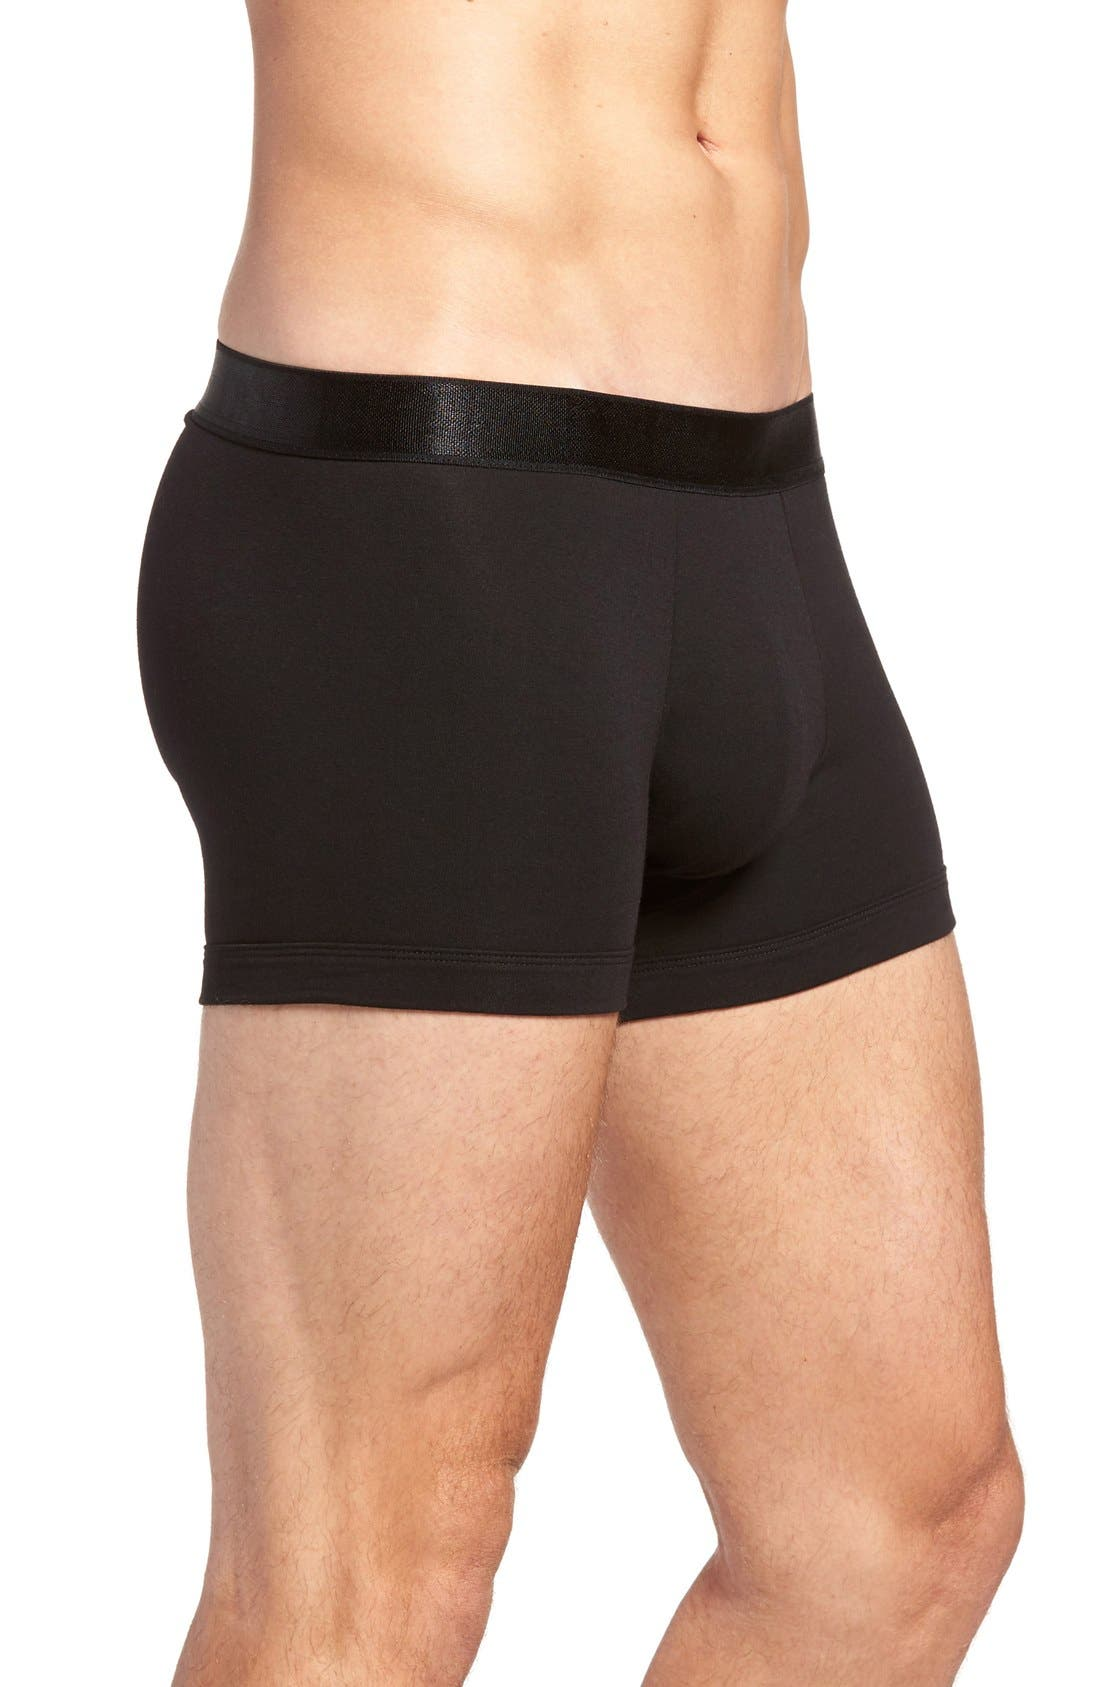 Micromodal Trunks,                             Alternate thumbnail 3, color,                             001